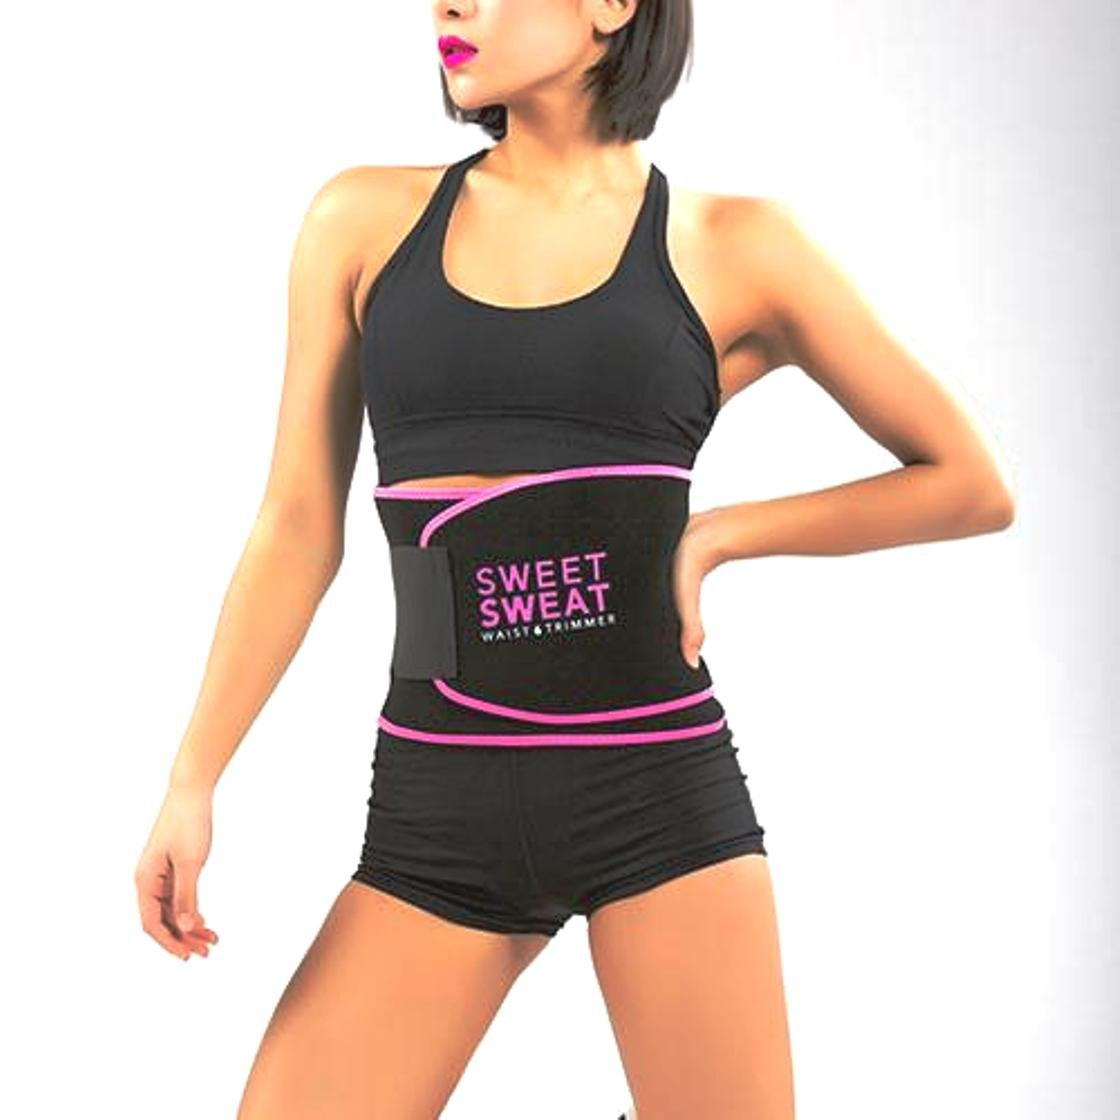 32fc64623f Buy Sweet Sweat Waist Trimmer® Pink Color Hot Waist Shaper Belt Instant  Slim Look Belt for Women Online at Low Prices in India - Amazon.in